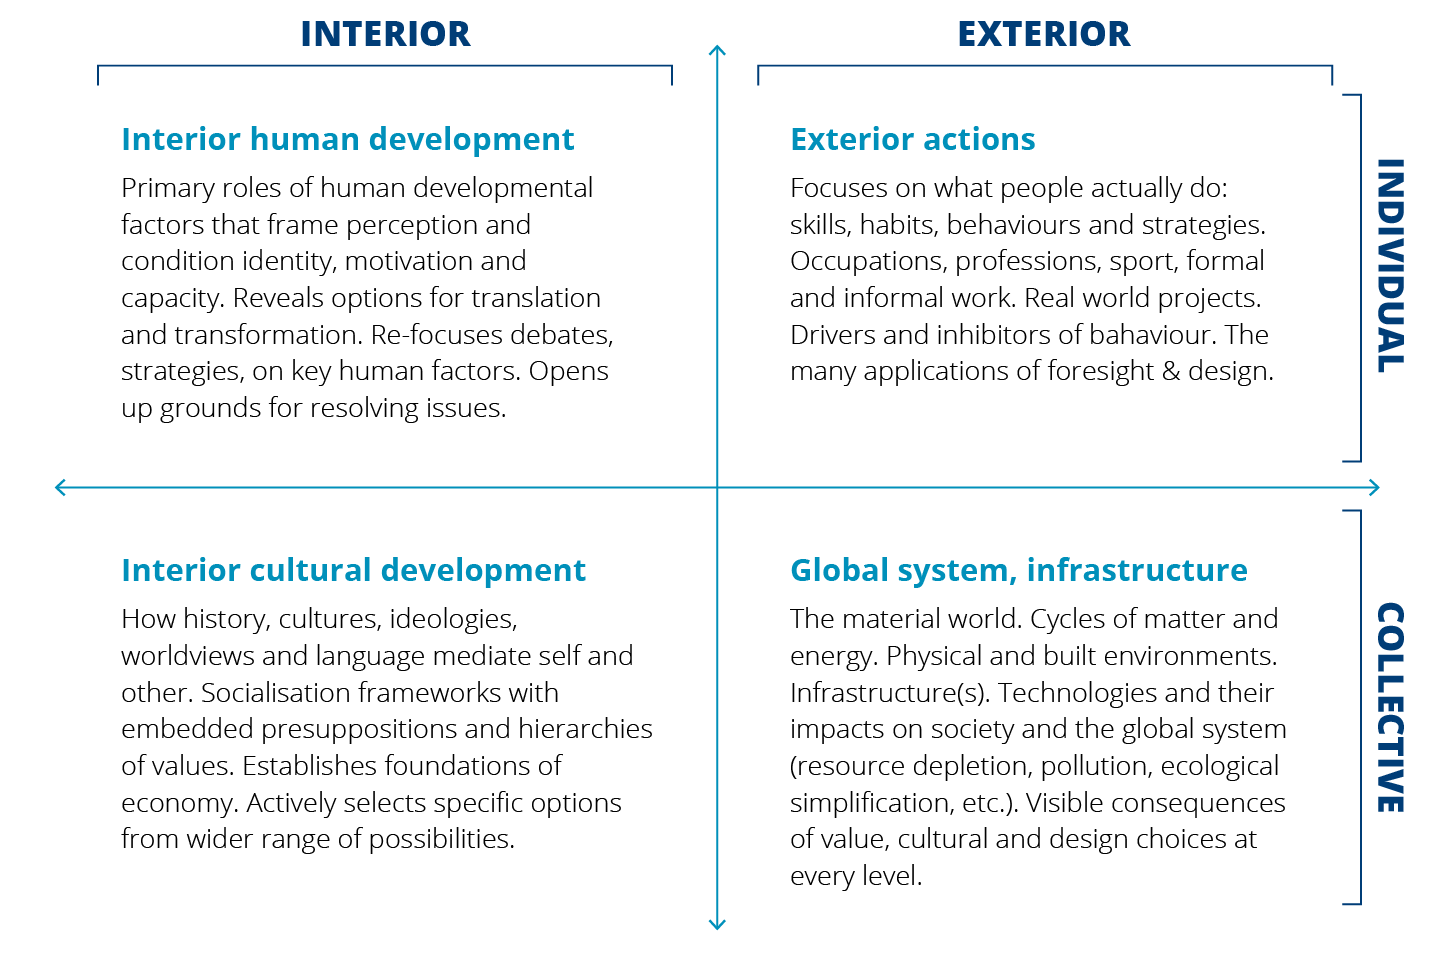 Four quandrants split by interior human development; interior cultural development, exterior actions and global sytem infrastructure